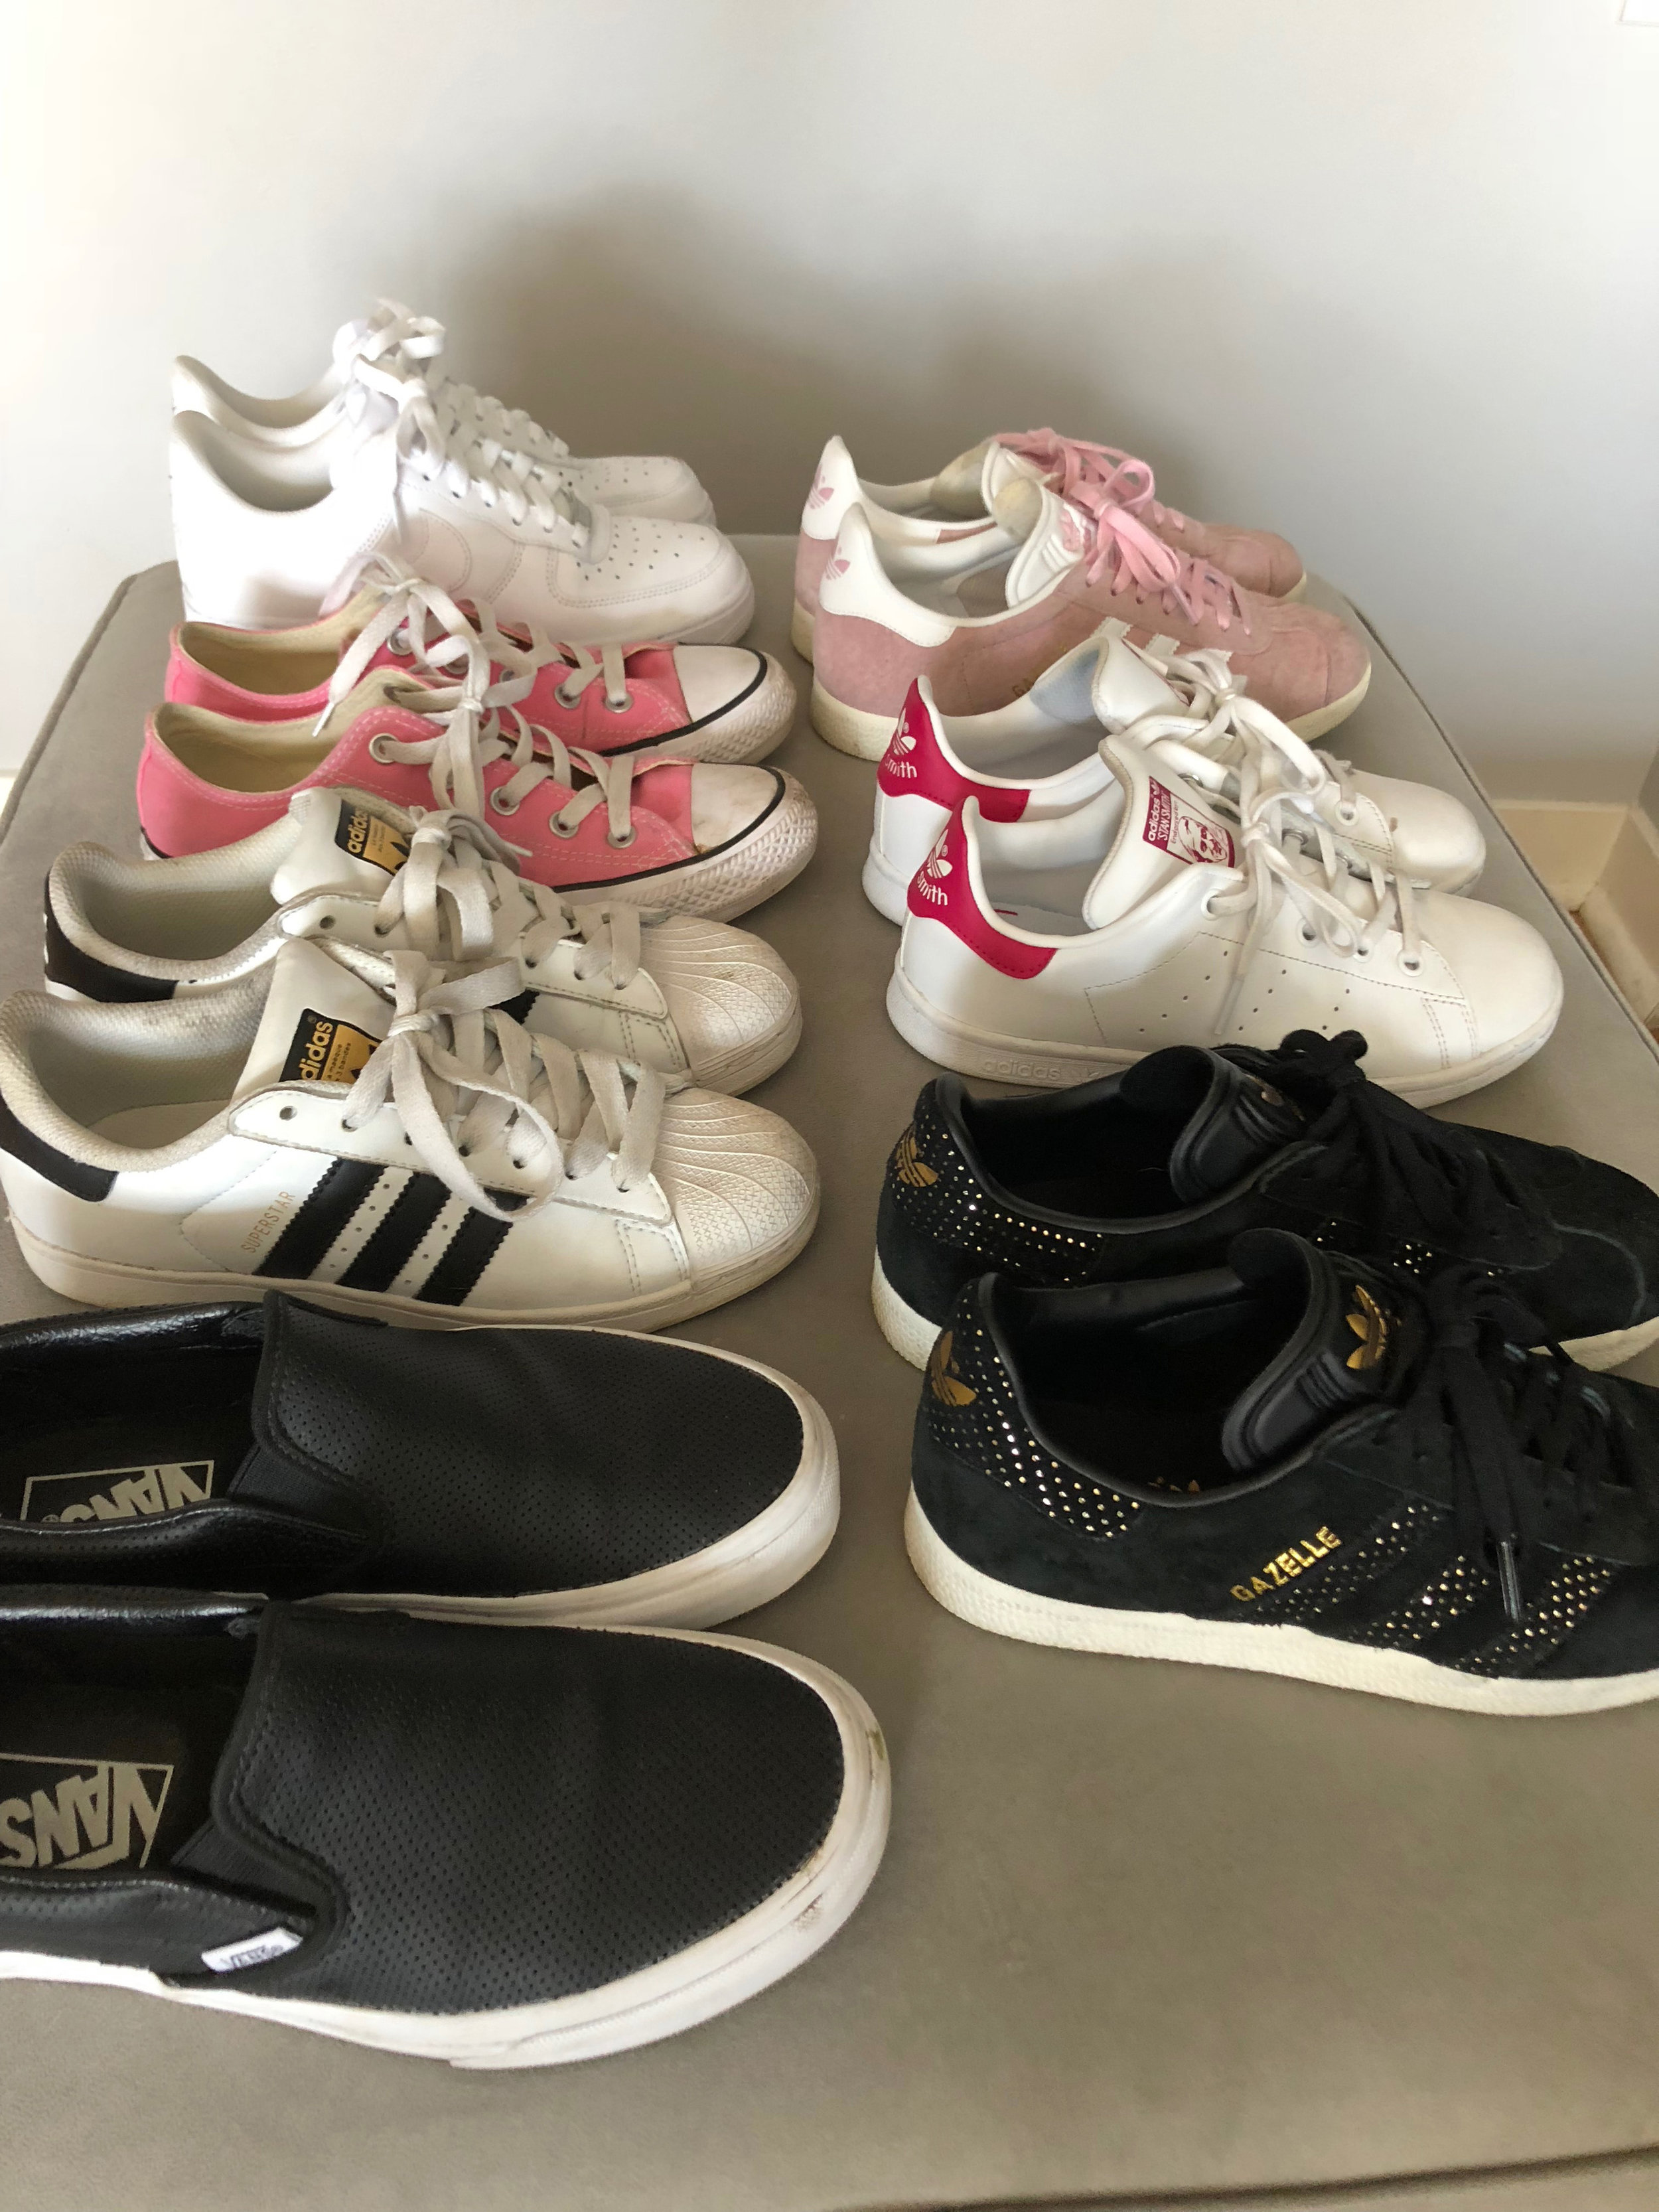 Sneaker For Addictions Good Magenta — Make Reviews thdQrs